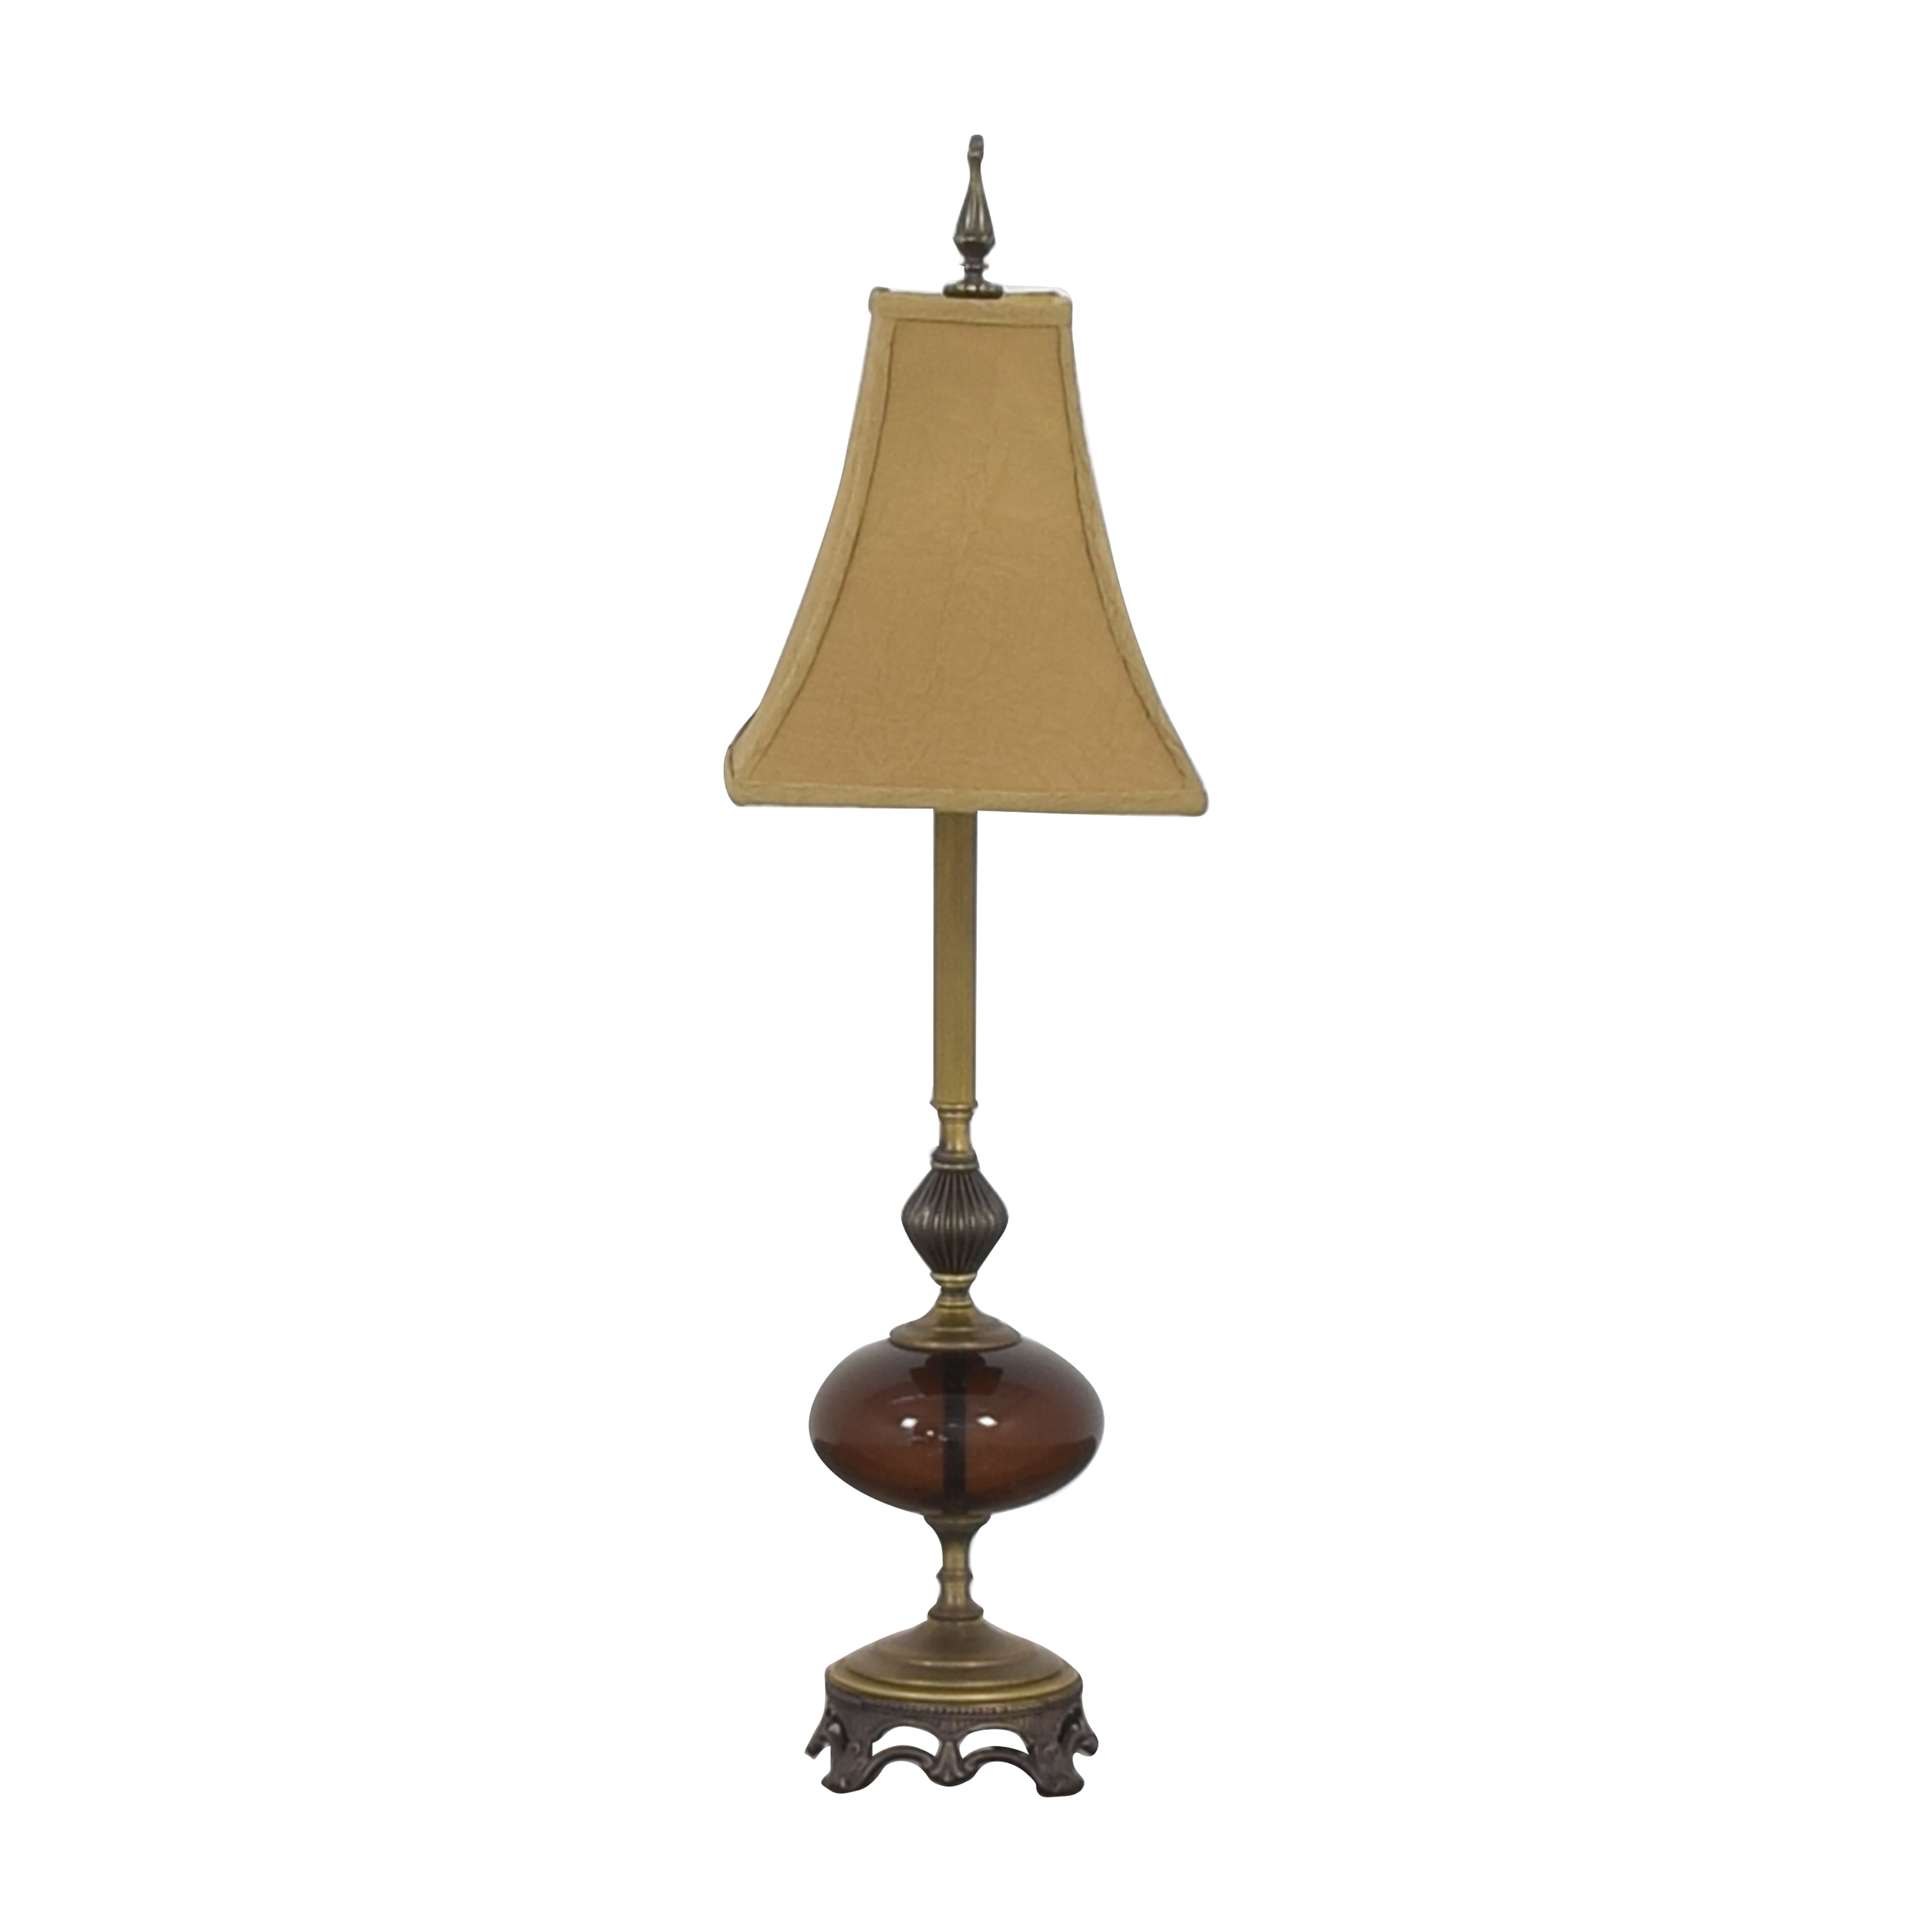 Vintage Style Table Lamp dimensions